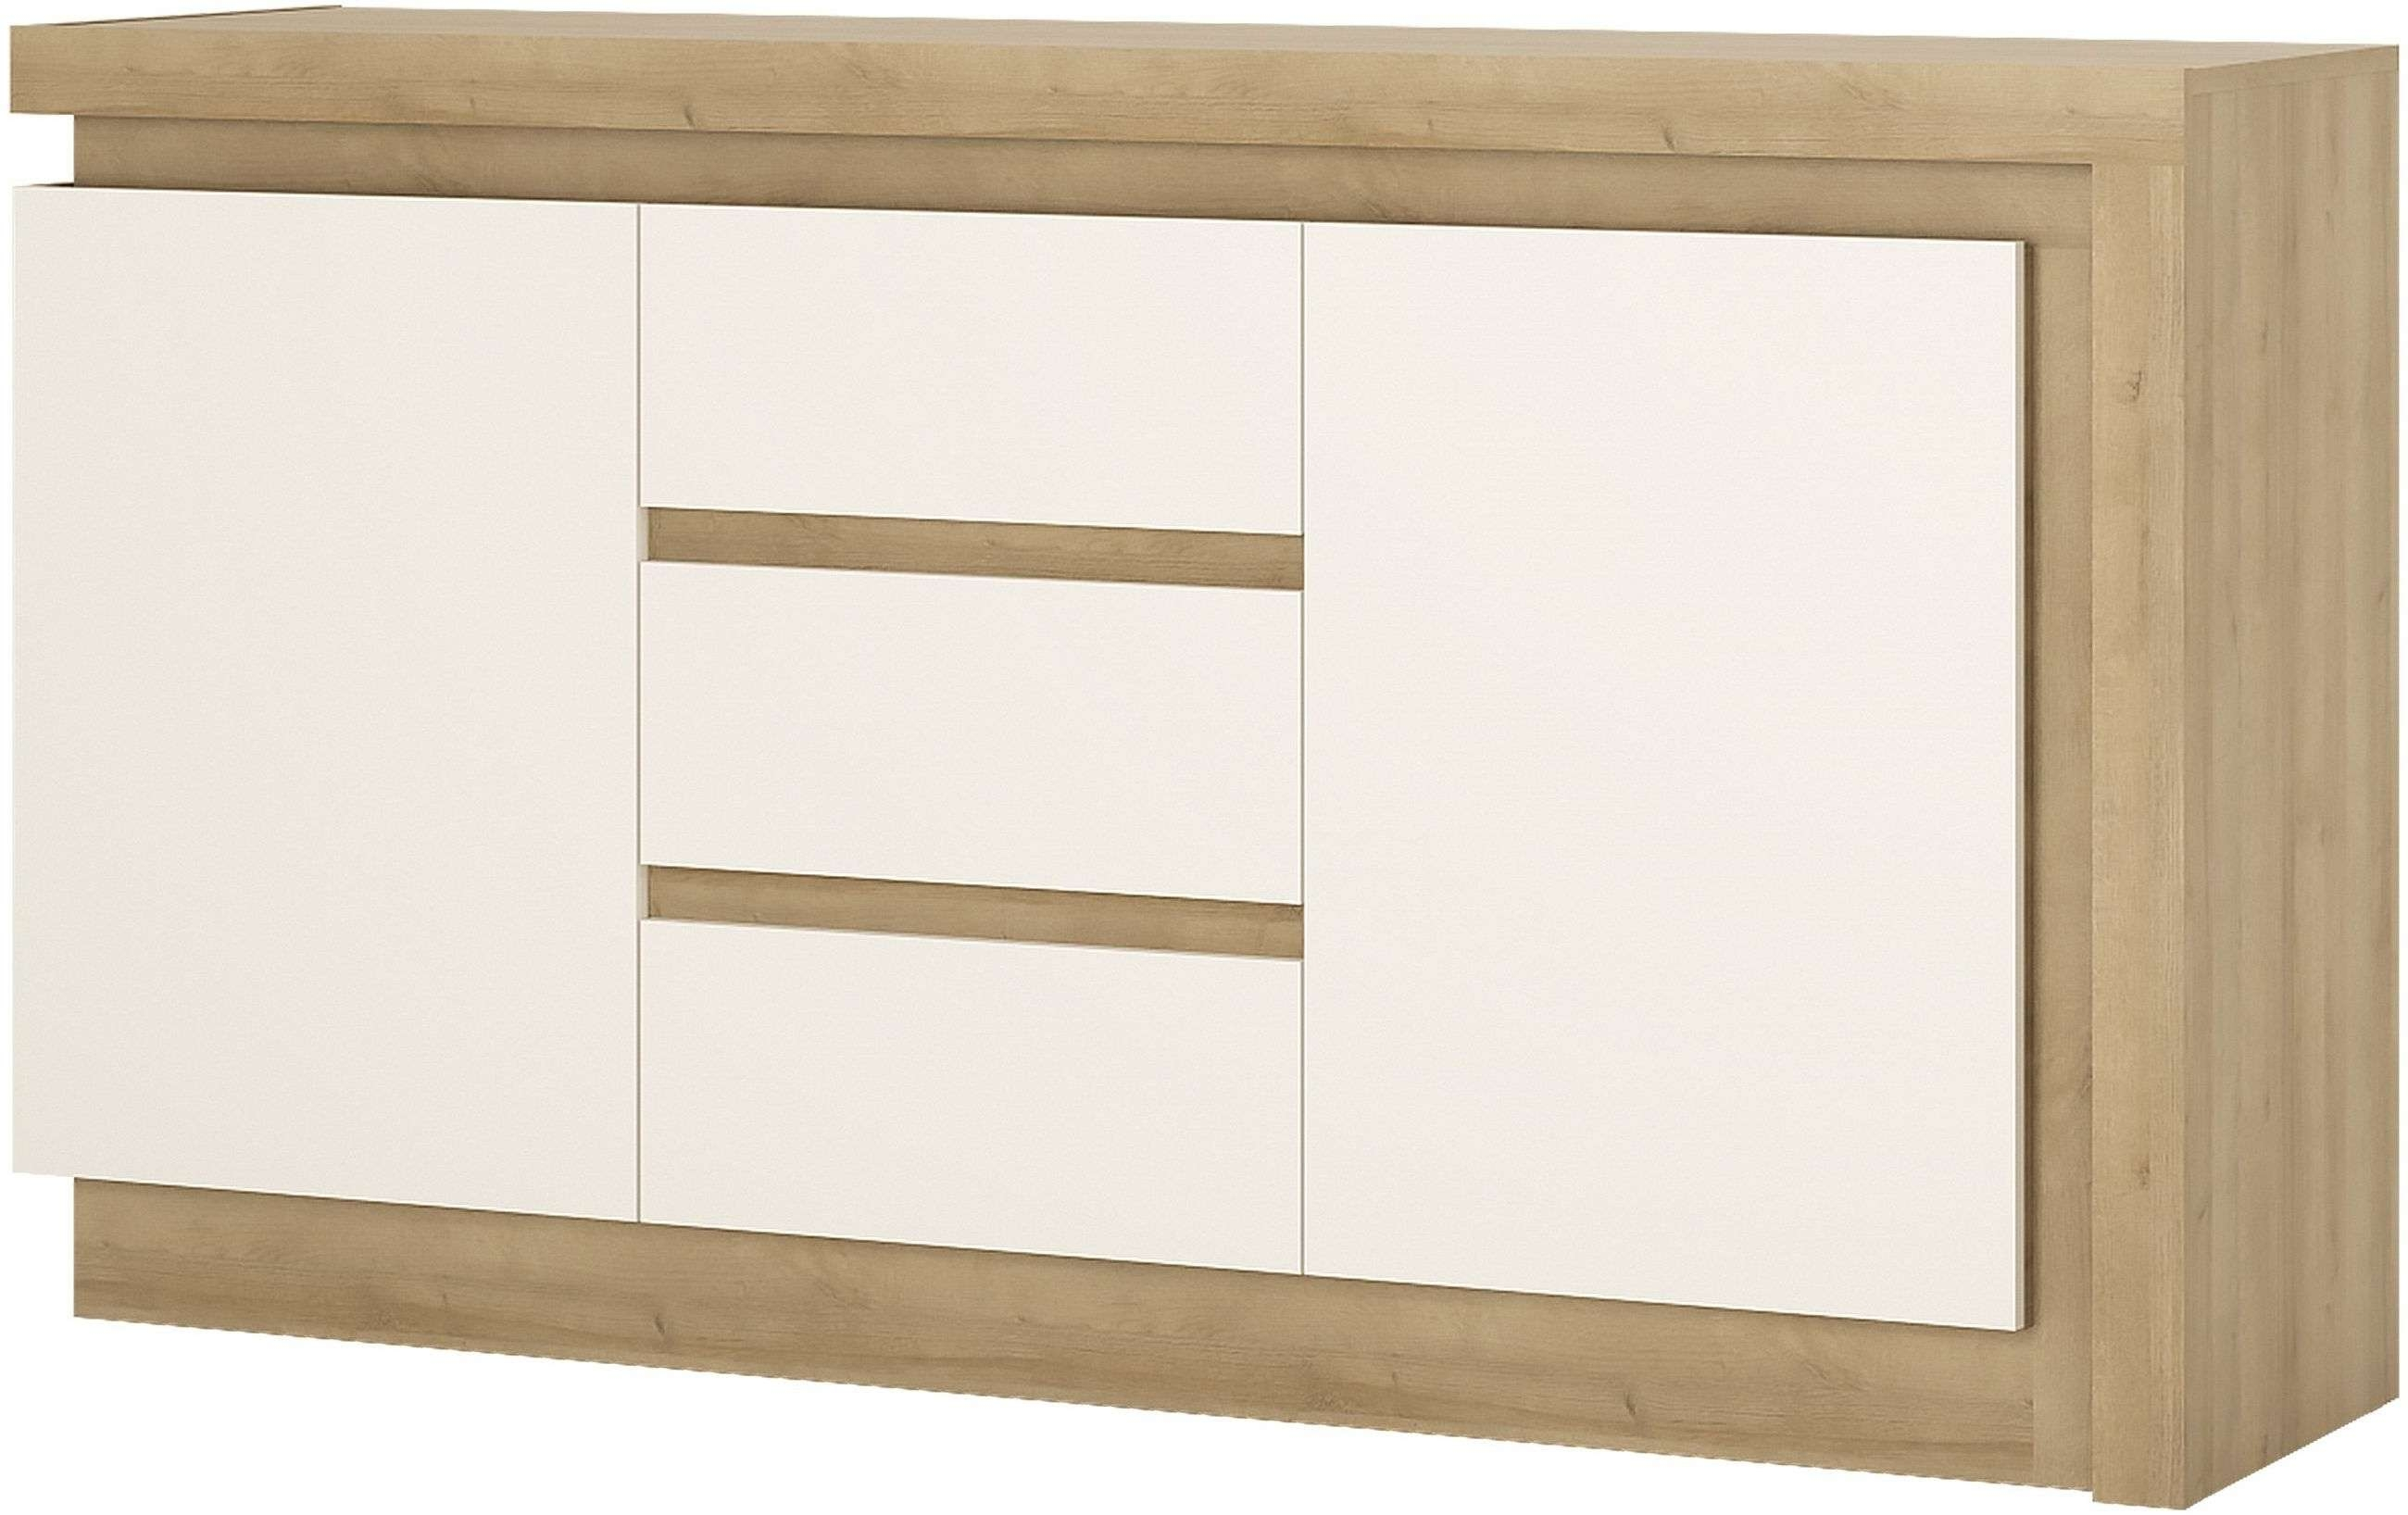 Buy Lyon Riviera Oak And White High Gloss Sideboard – 2 Door 3 For High White Gloss Sideboards (View 6 of 20)